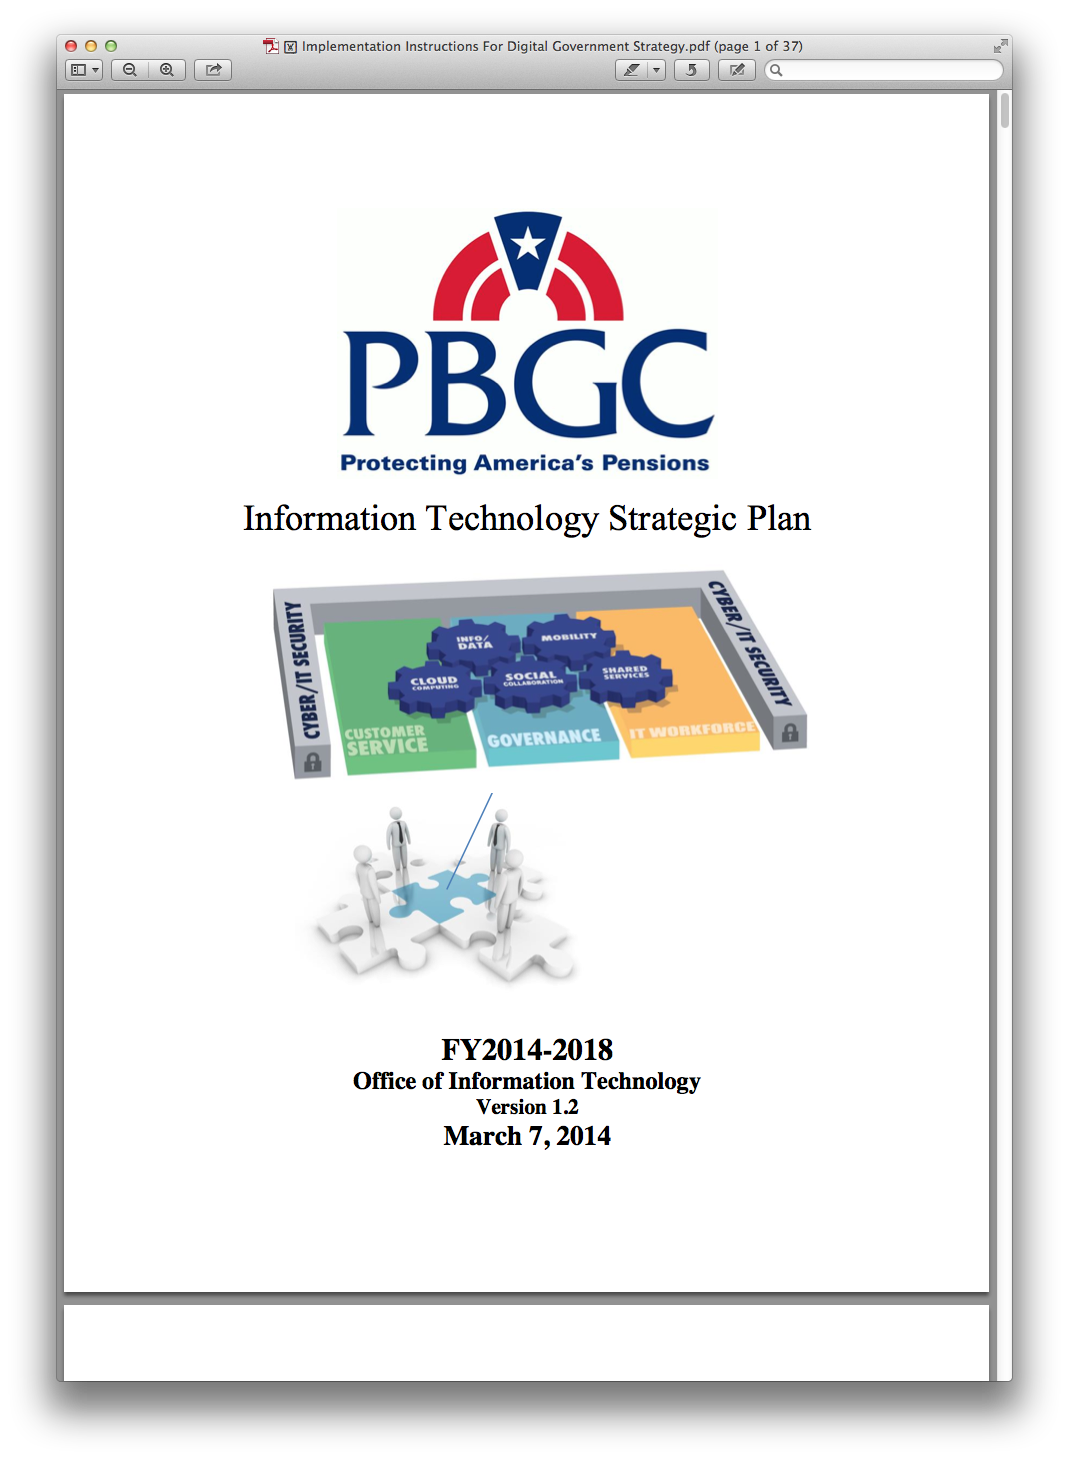 Implementation Instructions For Digital Government Strategy.pdf.png (1069×1460)